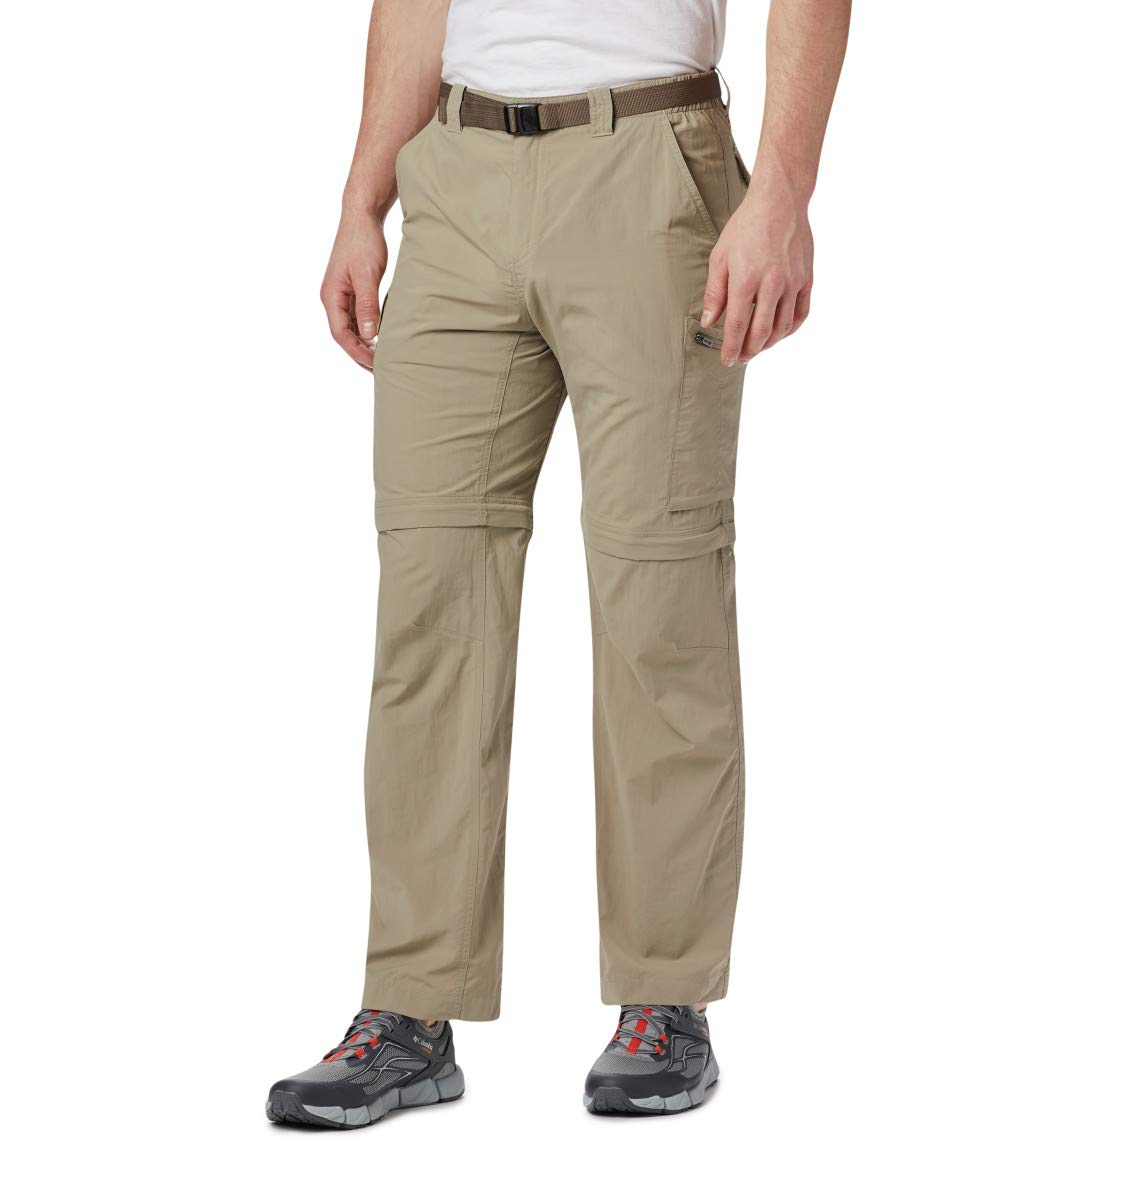 Columbia Men's Silver Ridge Convertible Pant, Breathable, UPF 50 Sun Protection, Tusk, 30x28 by Columbia